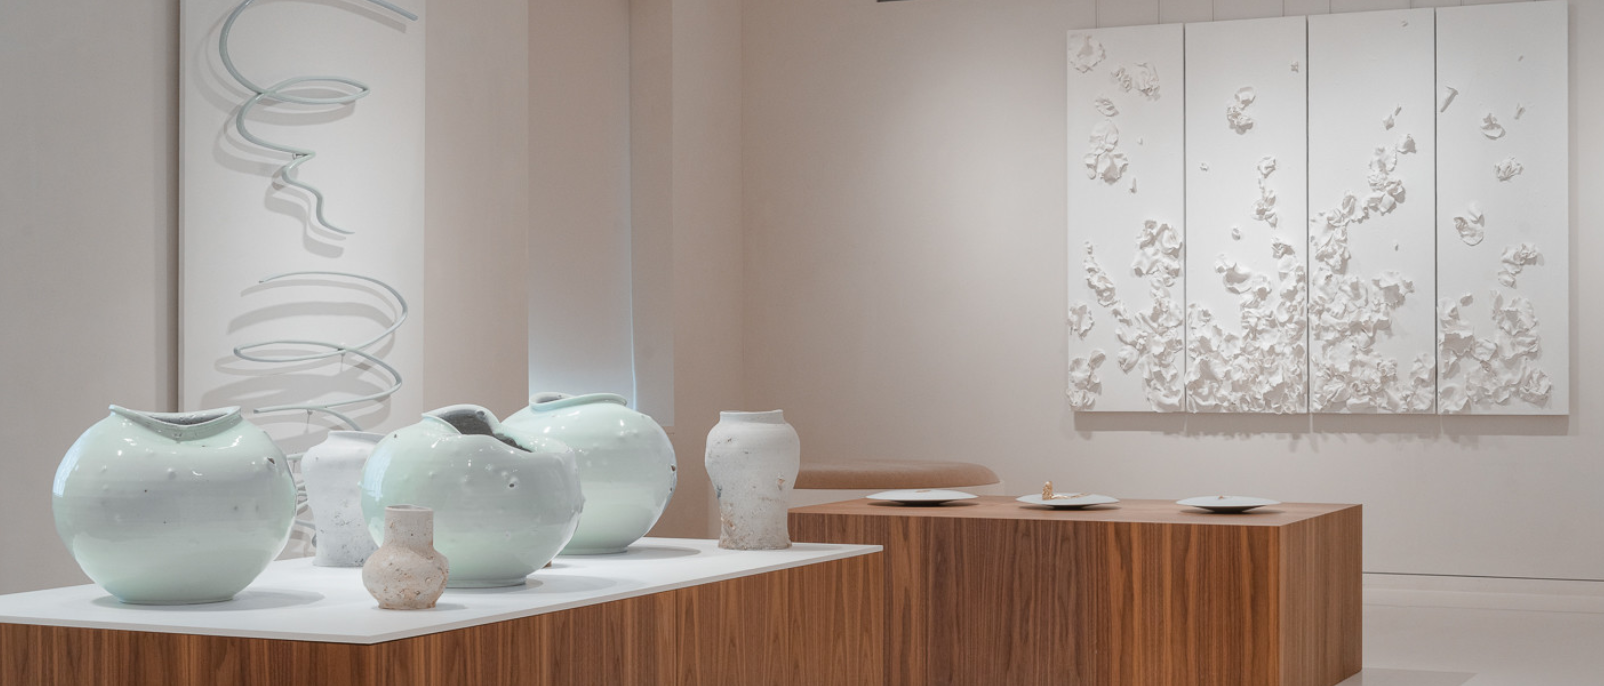 BING! BING! 砰砰! Contemporary Ceramics: Paris bis 08.09.2021